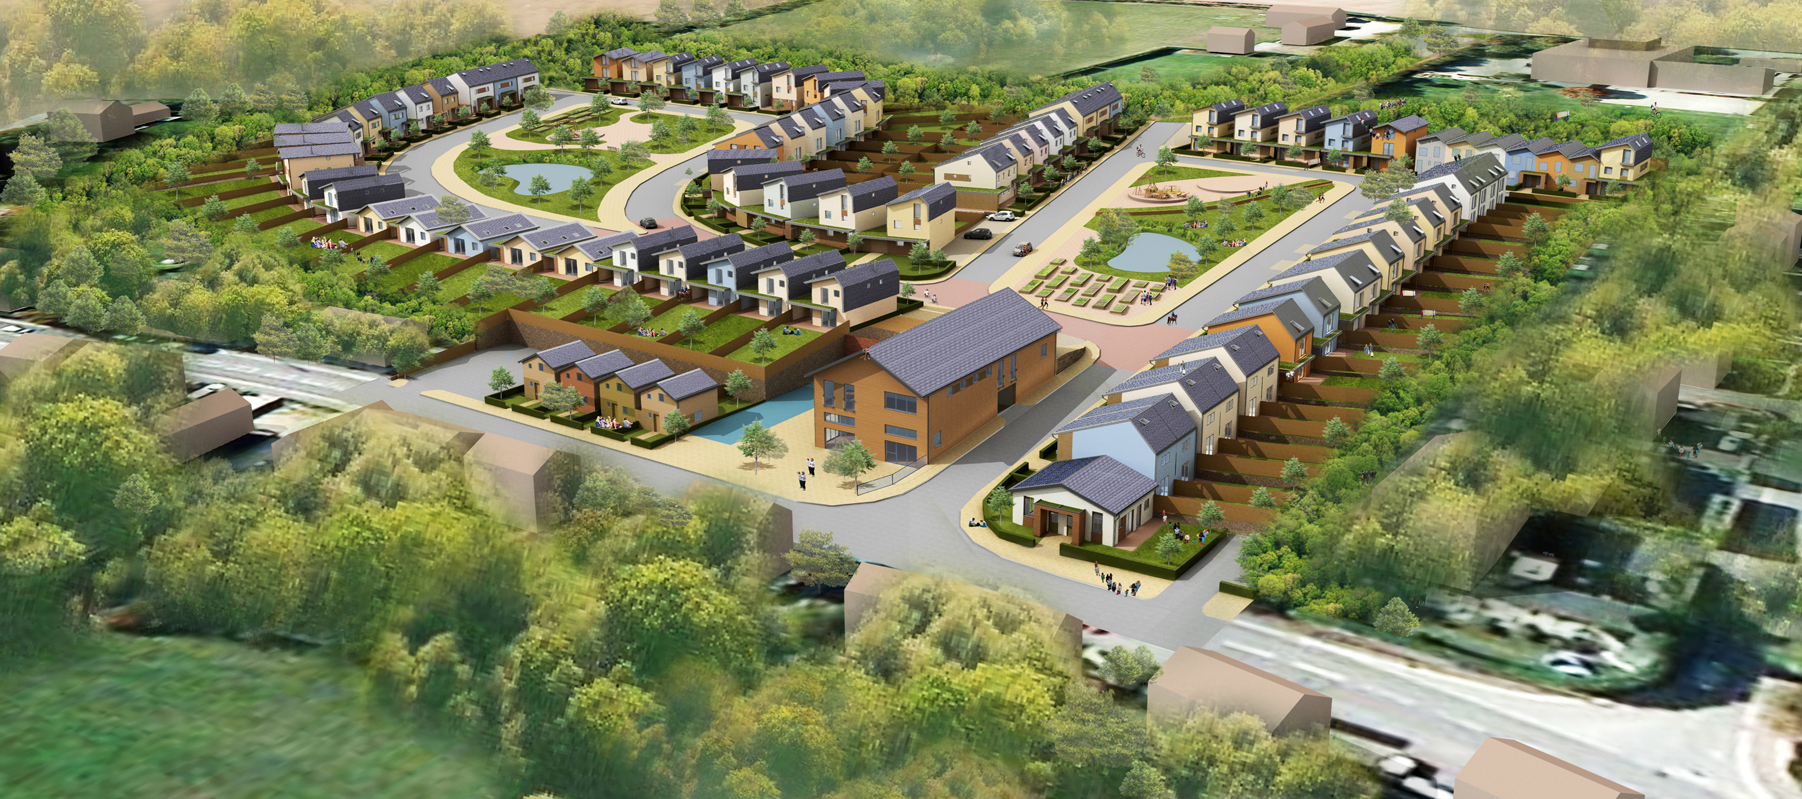 Newport Eco-village (2016)